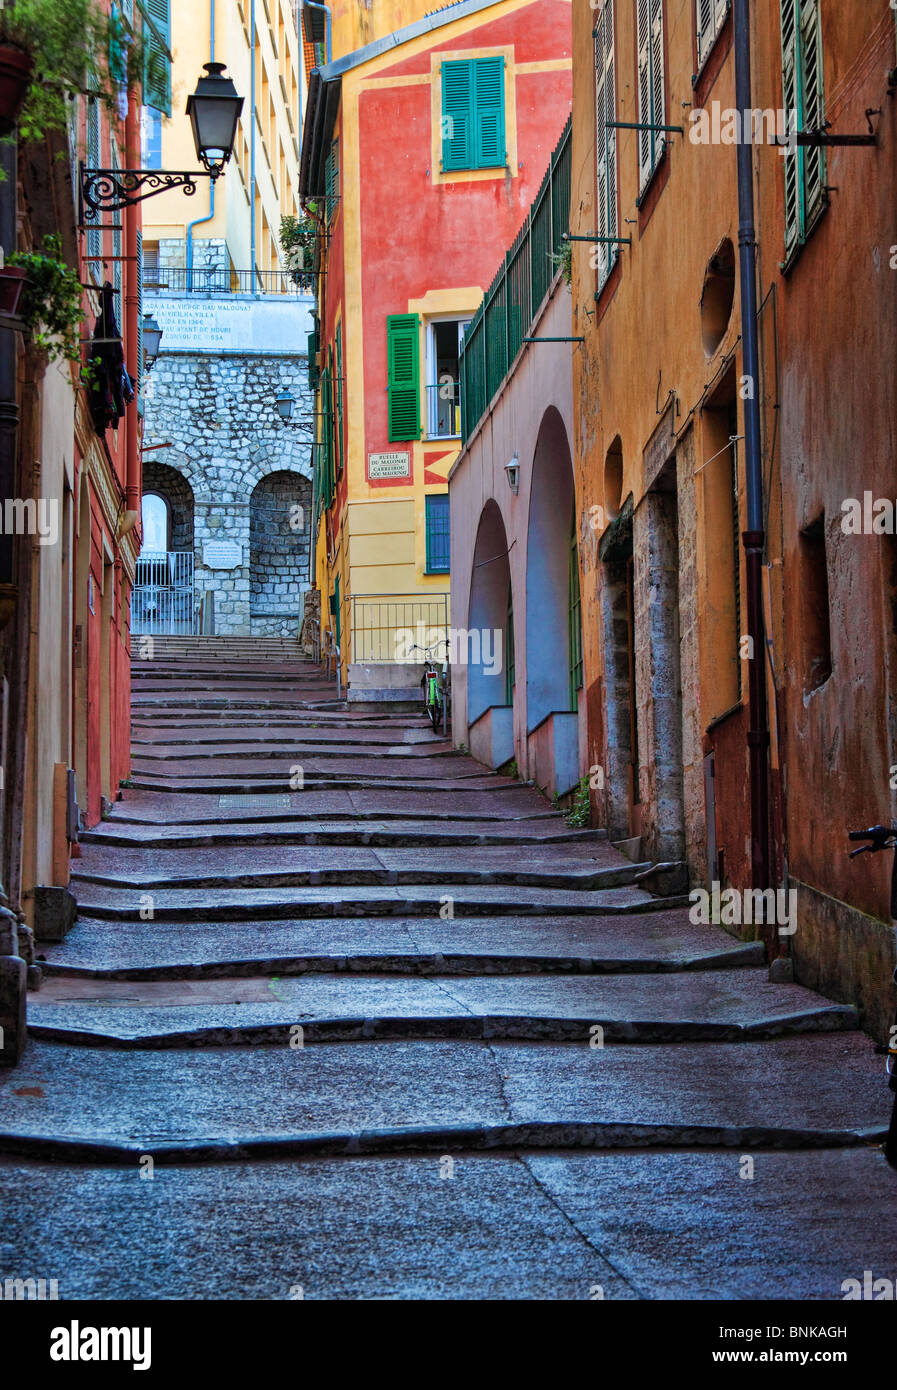 Street scene in the Vieille Ville (old town) part of Nice on the French Riviera (Cote d'Azur) - Stock Image